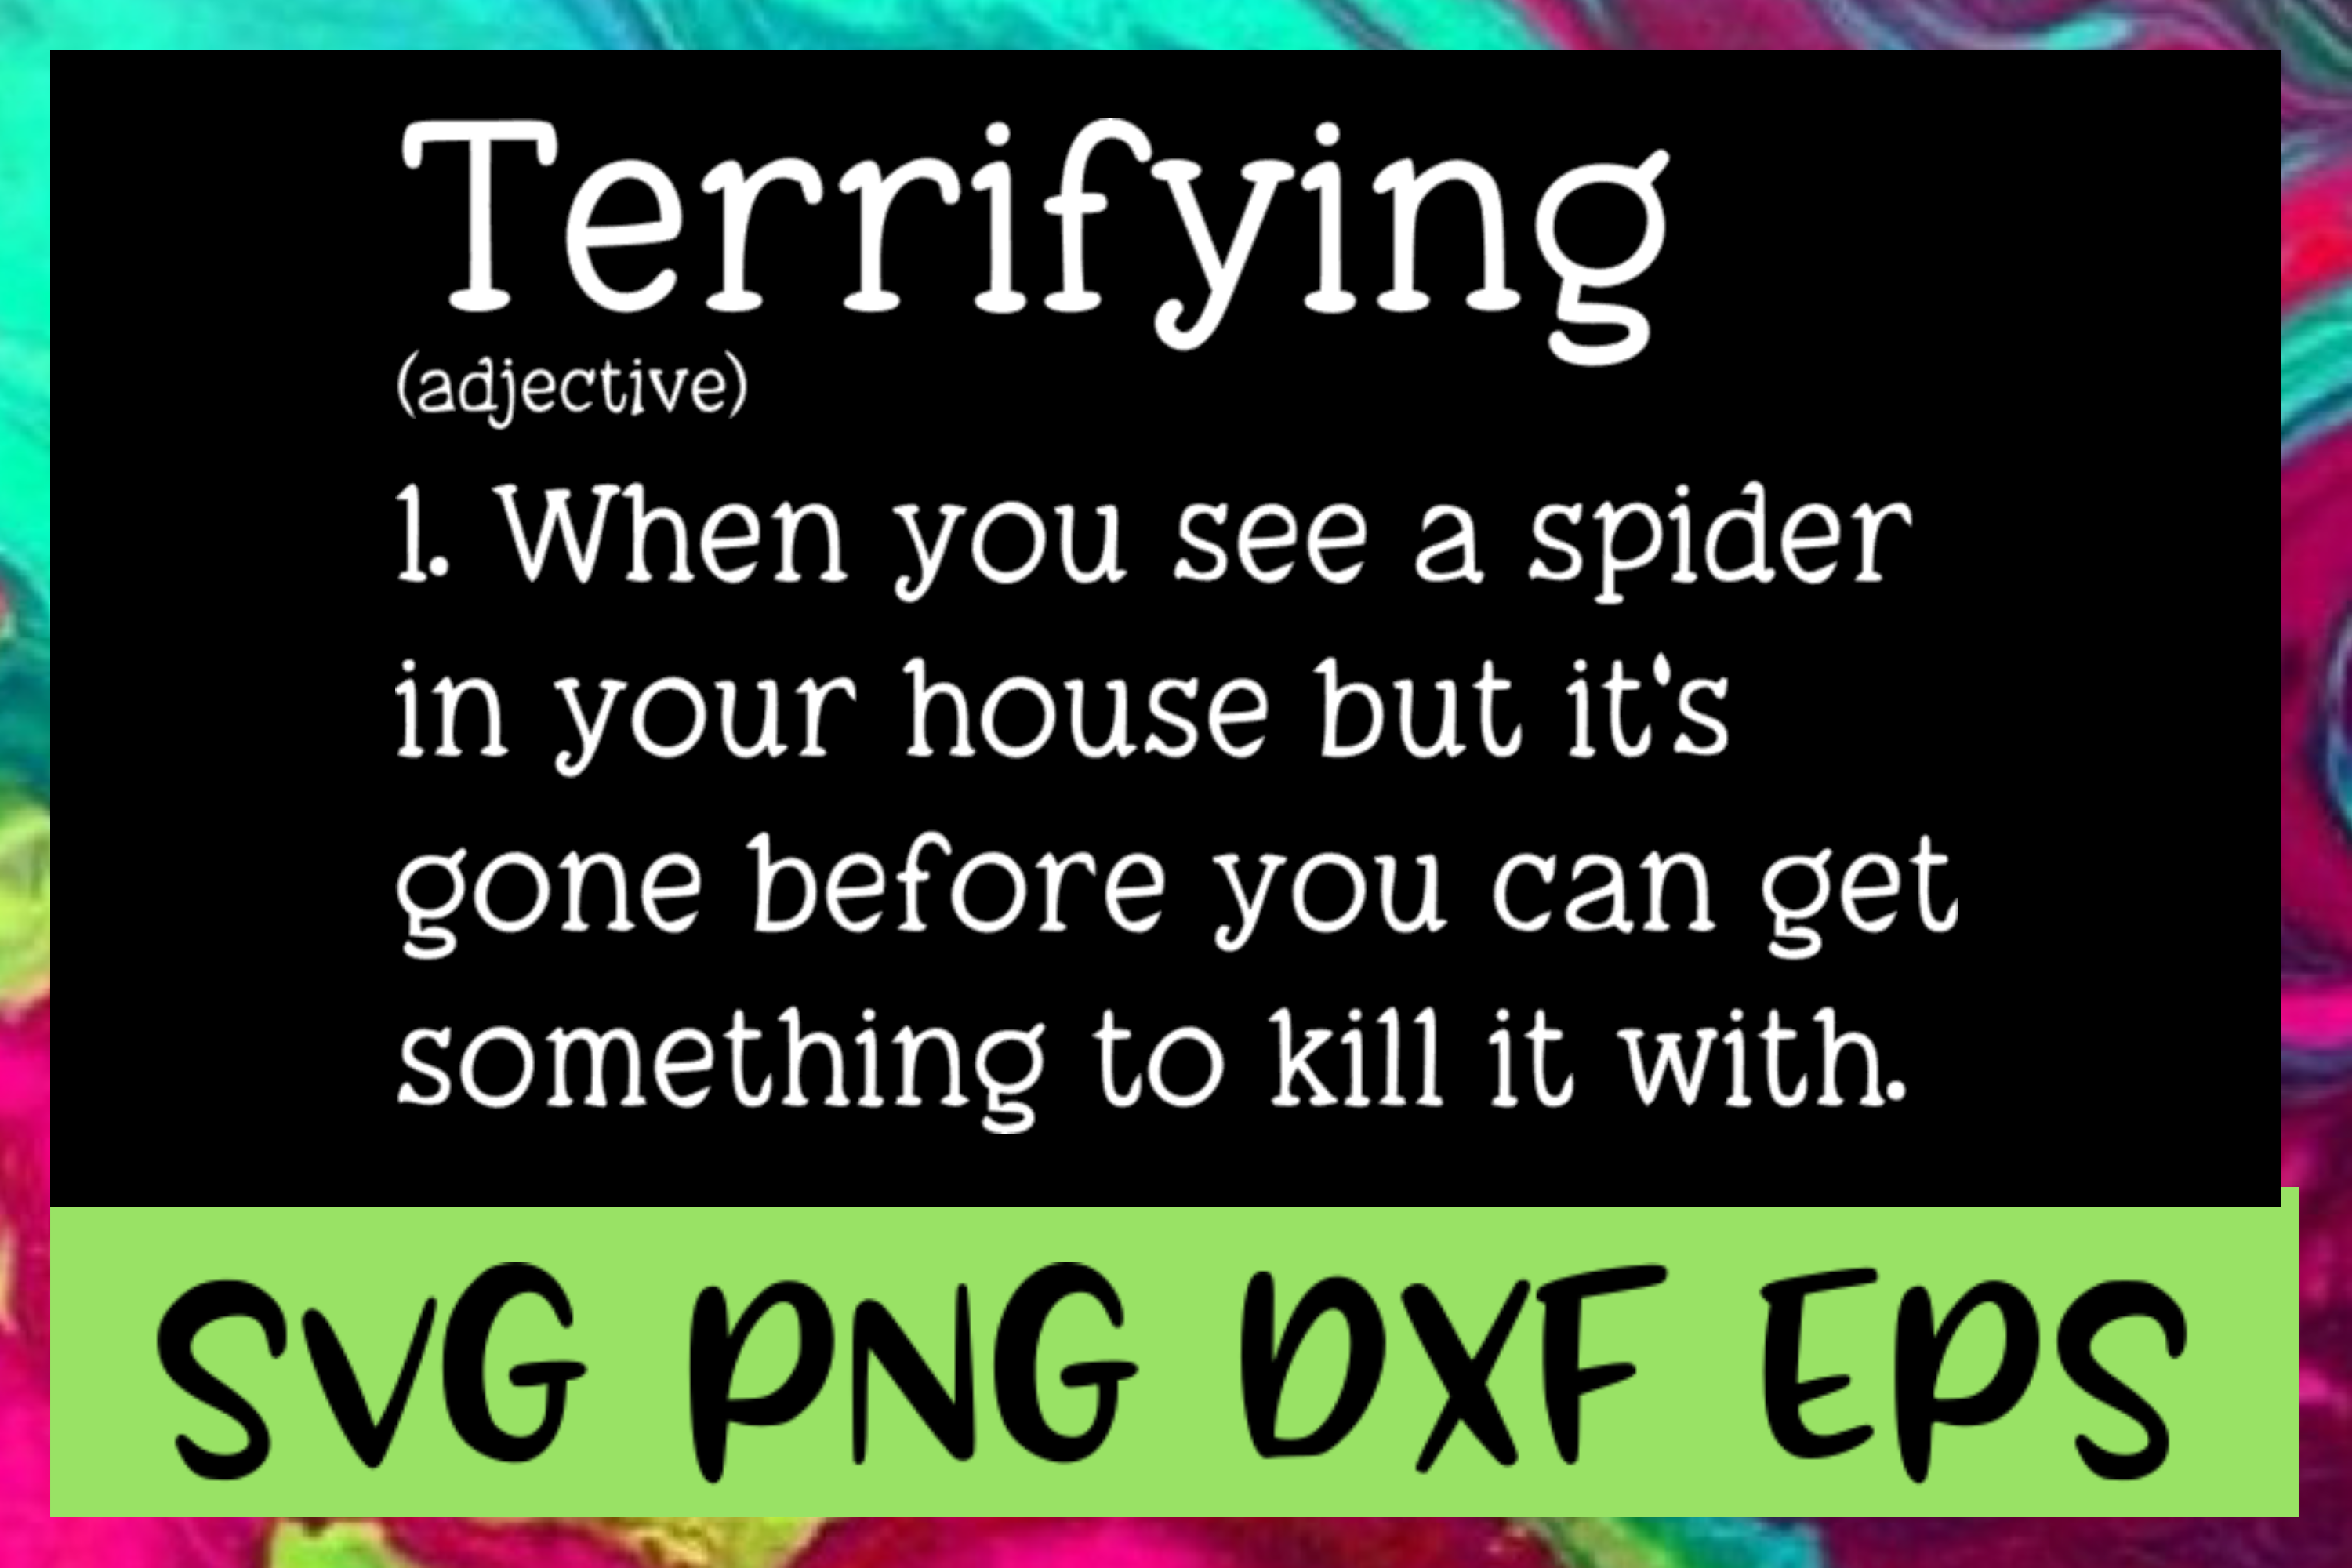 Terrifying Definition SVG PNG DXF & EPS Design Files example image 1